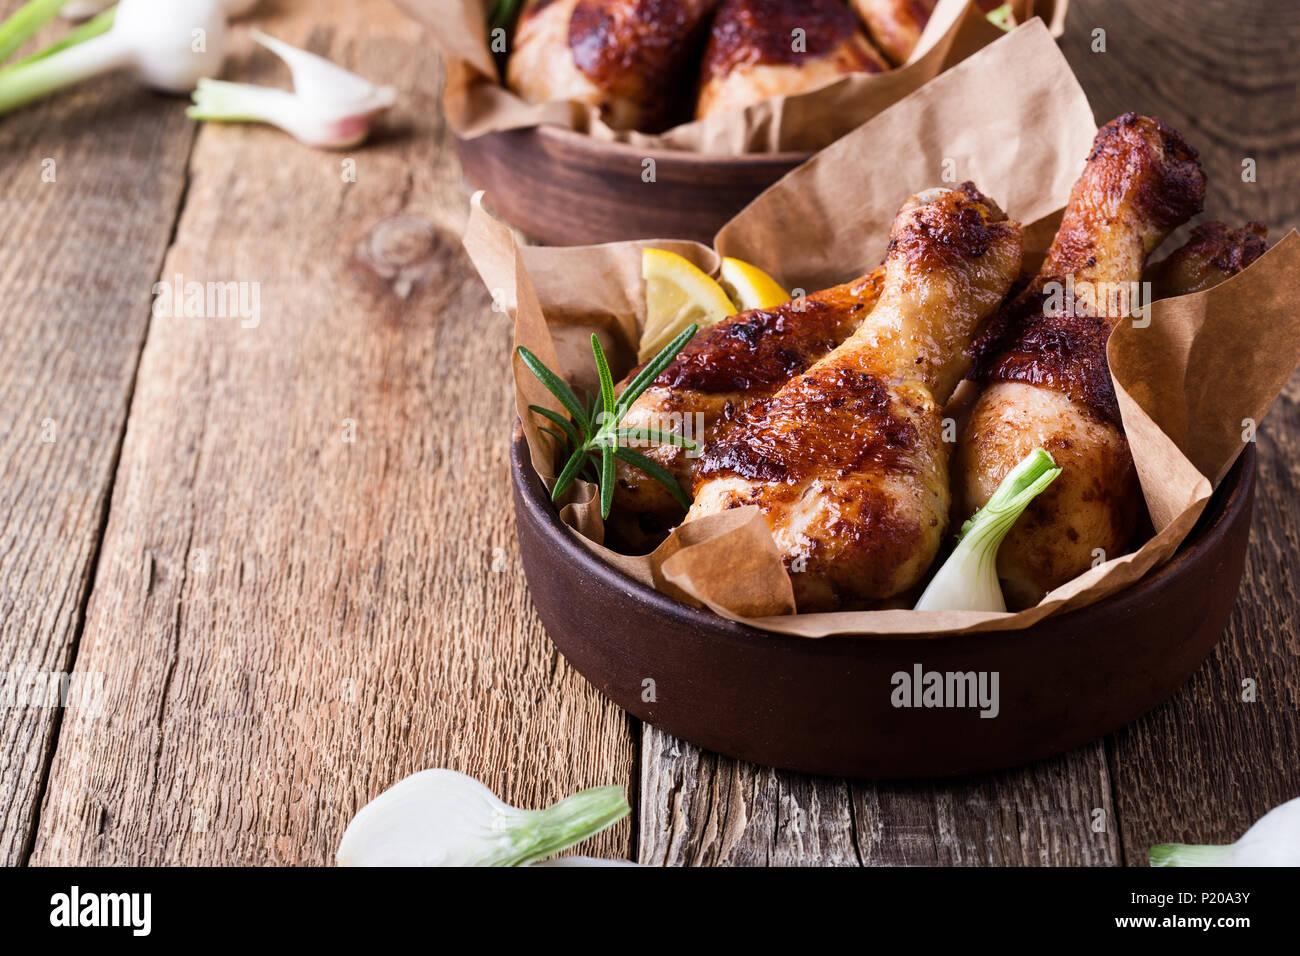 Roasted chicken drumsticks in ceramic bowl on rustic wooden table, favorite meal - Stock Image